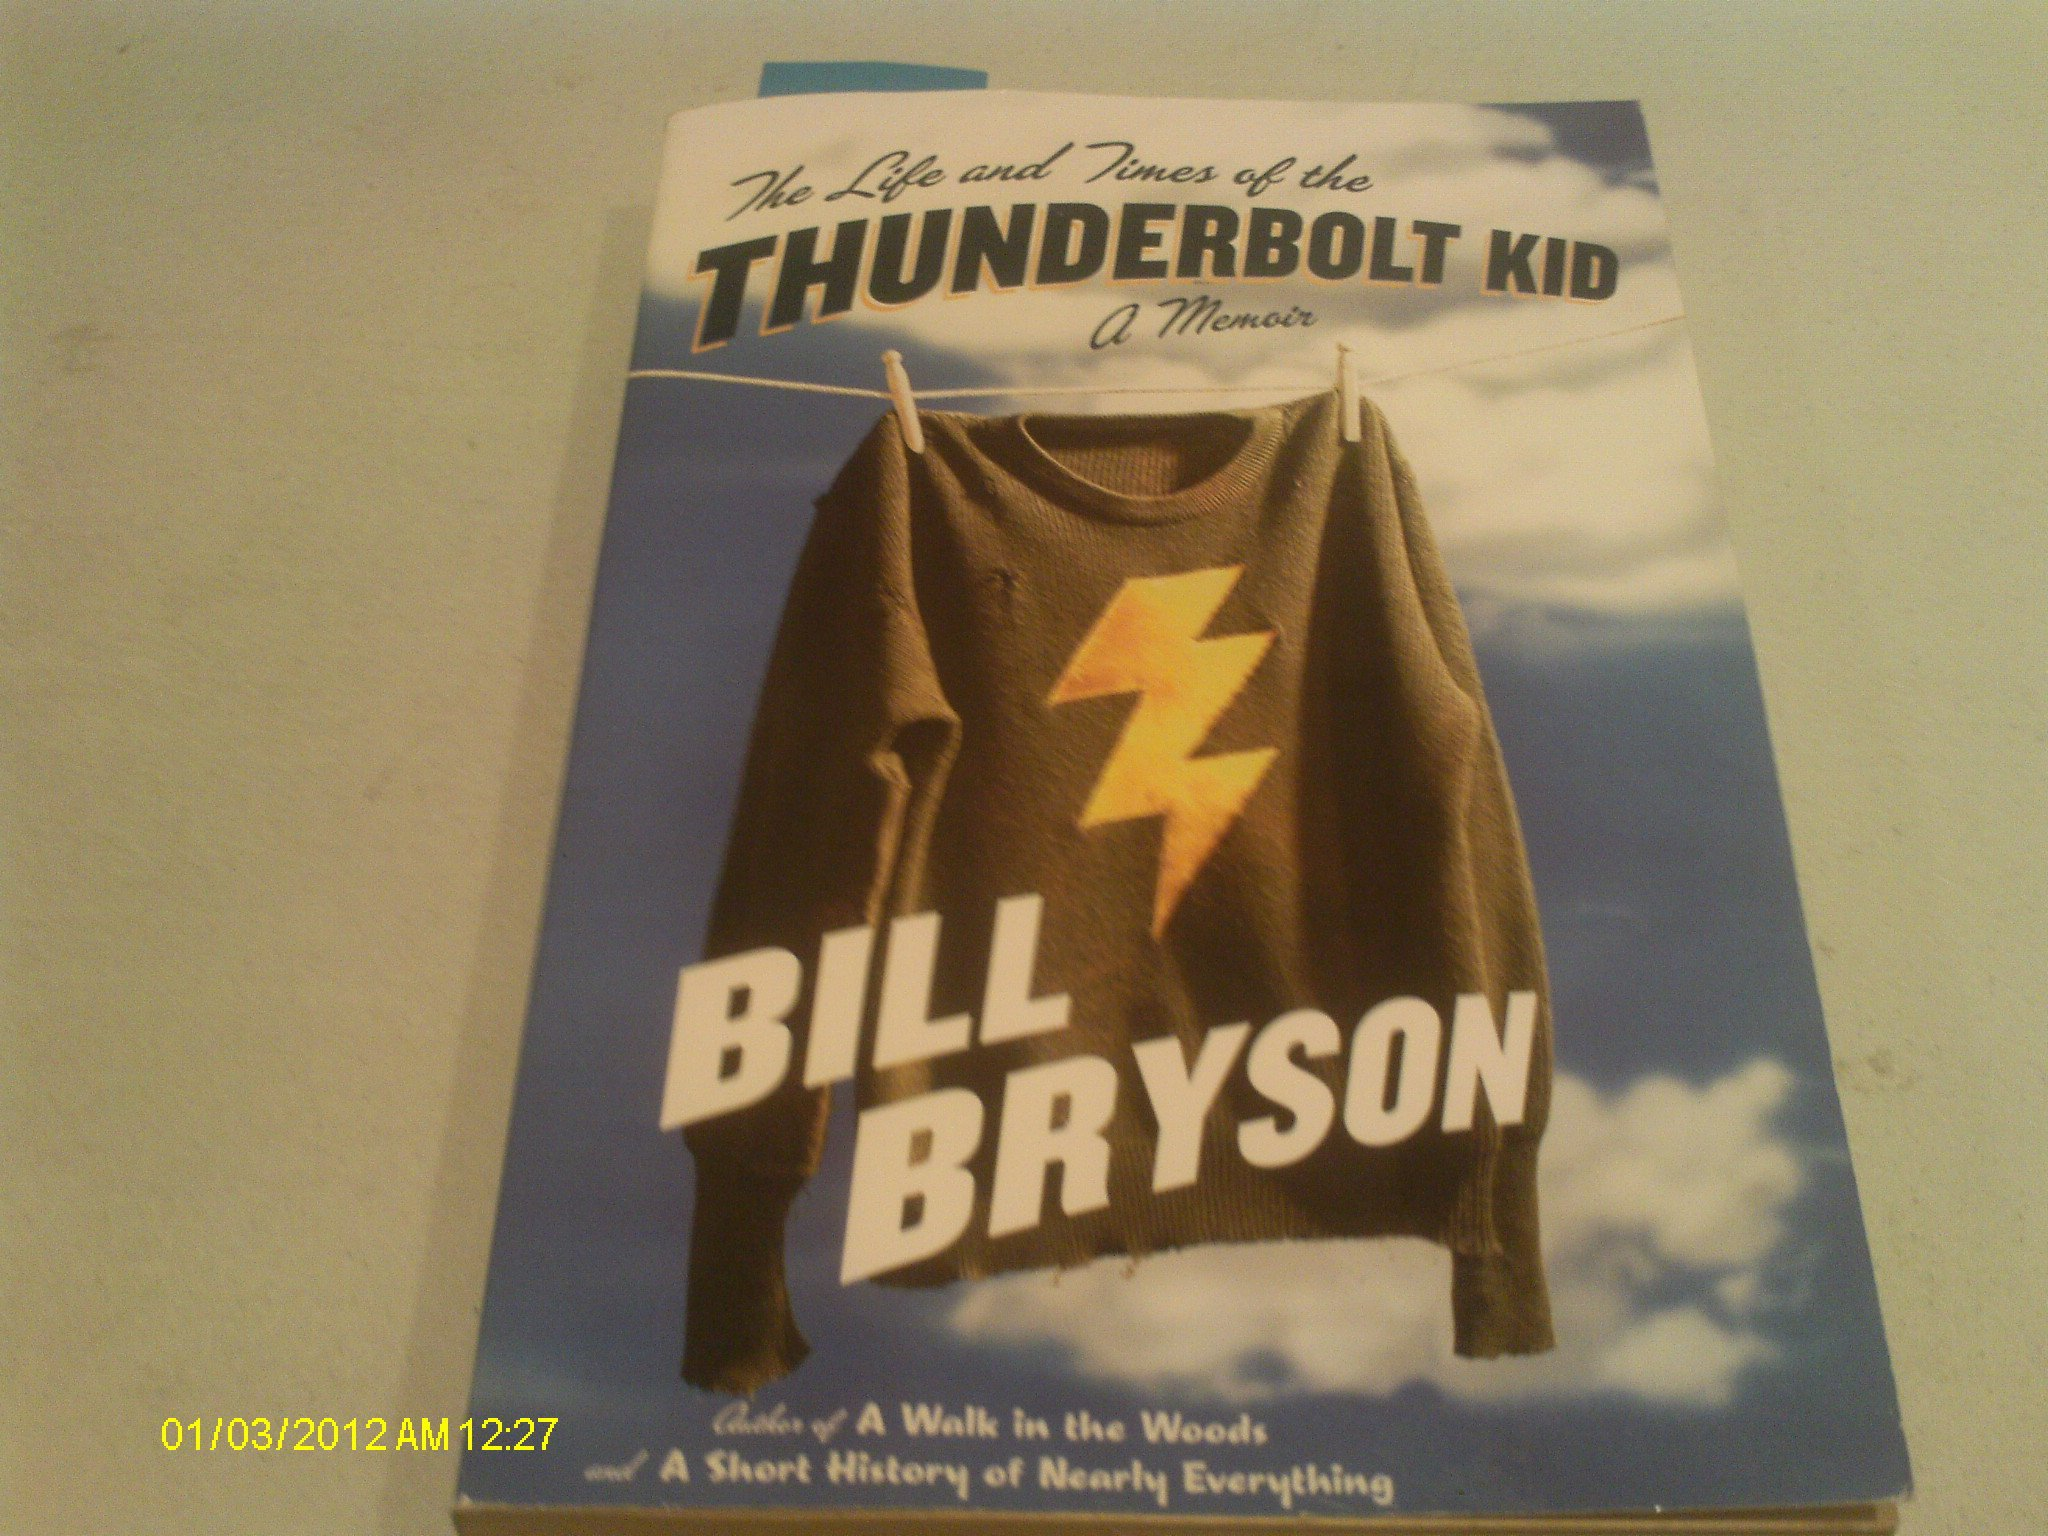 The Life And Times Of The Thunderbolt Kid  A Memoir: Bill Bryson:  9780767919371: Amazon: Books